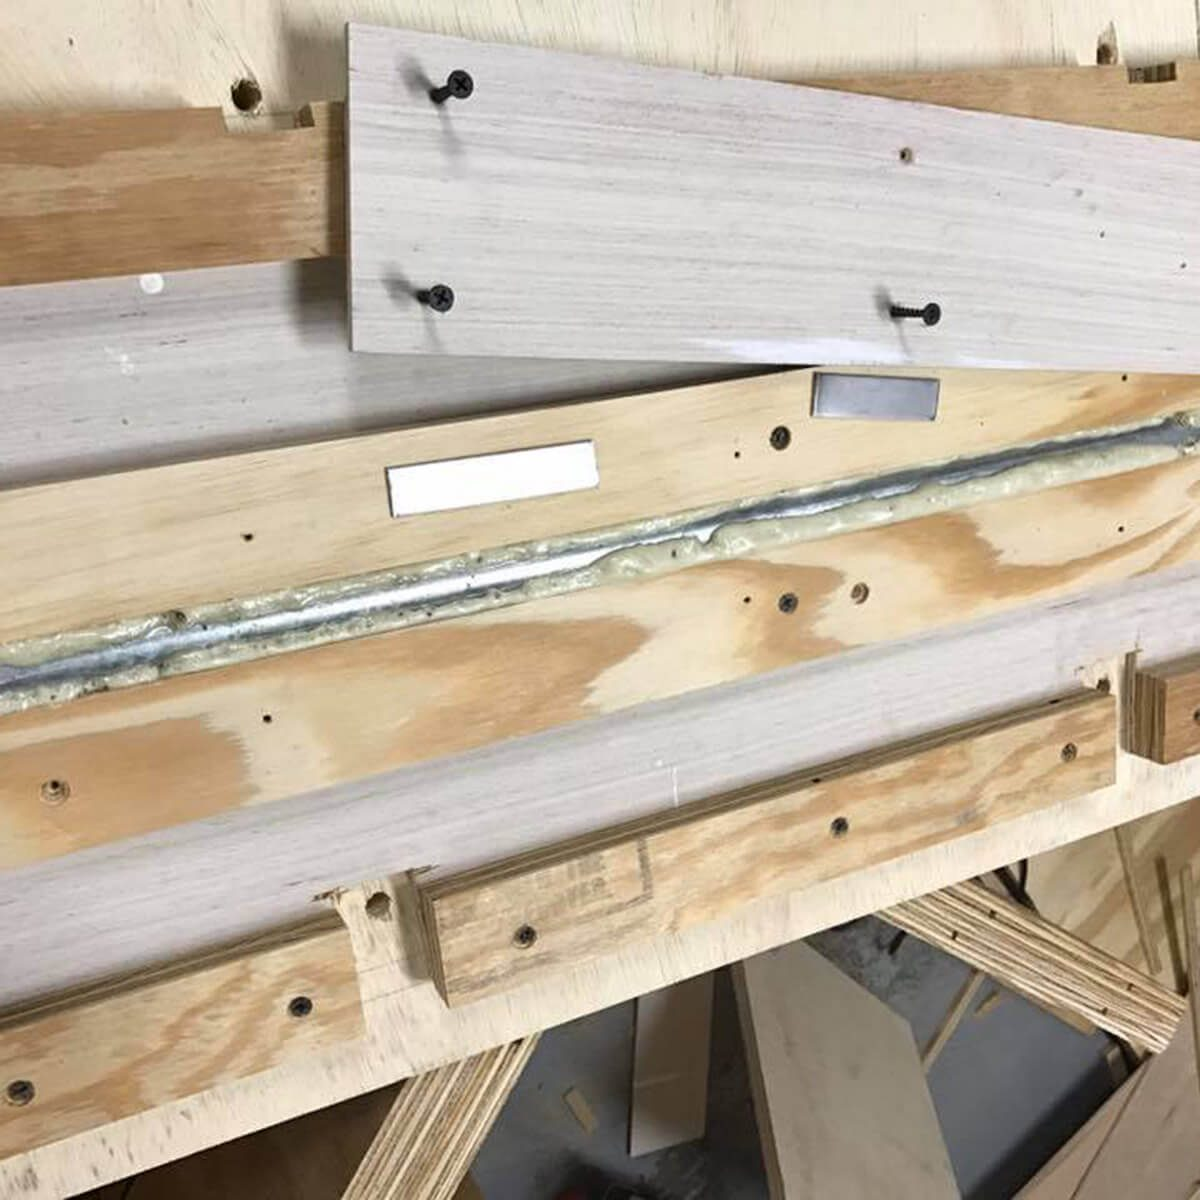 gluing bars in flip-top workbench